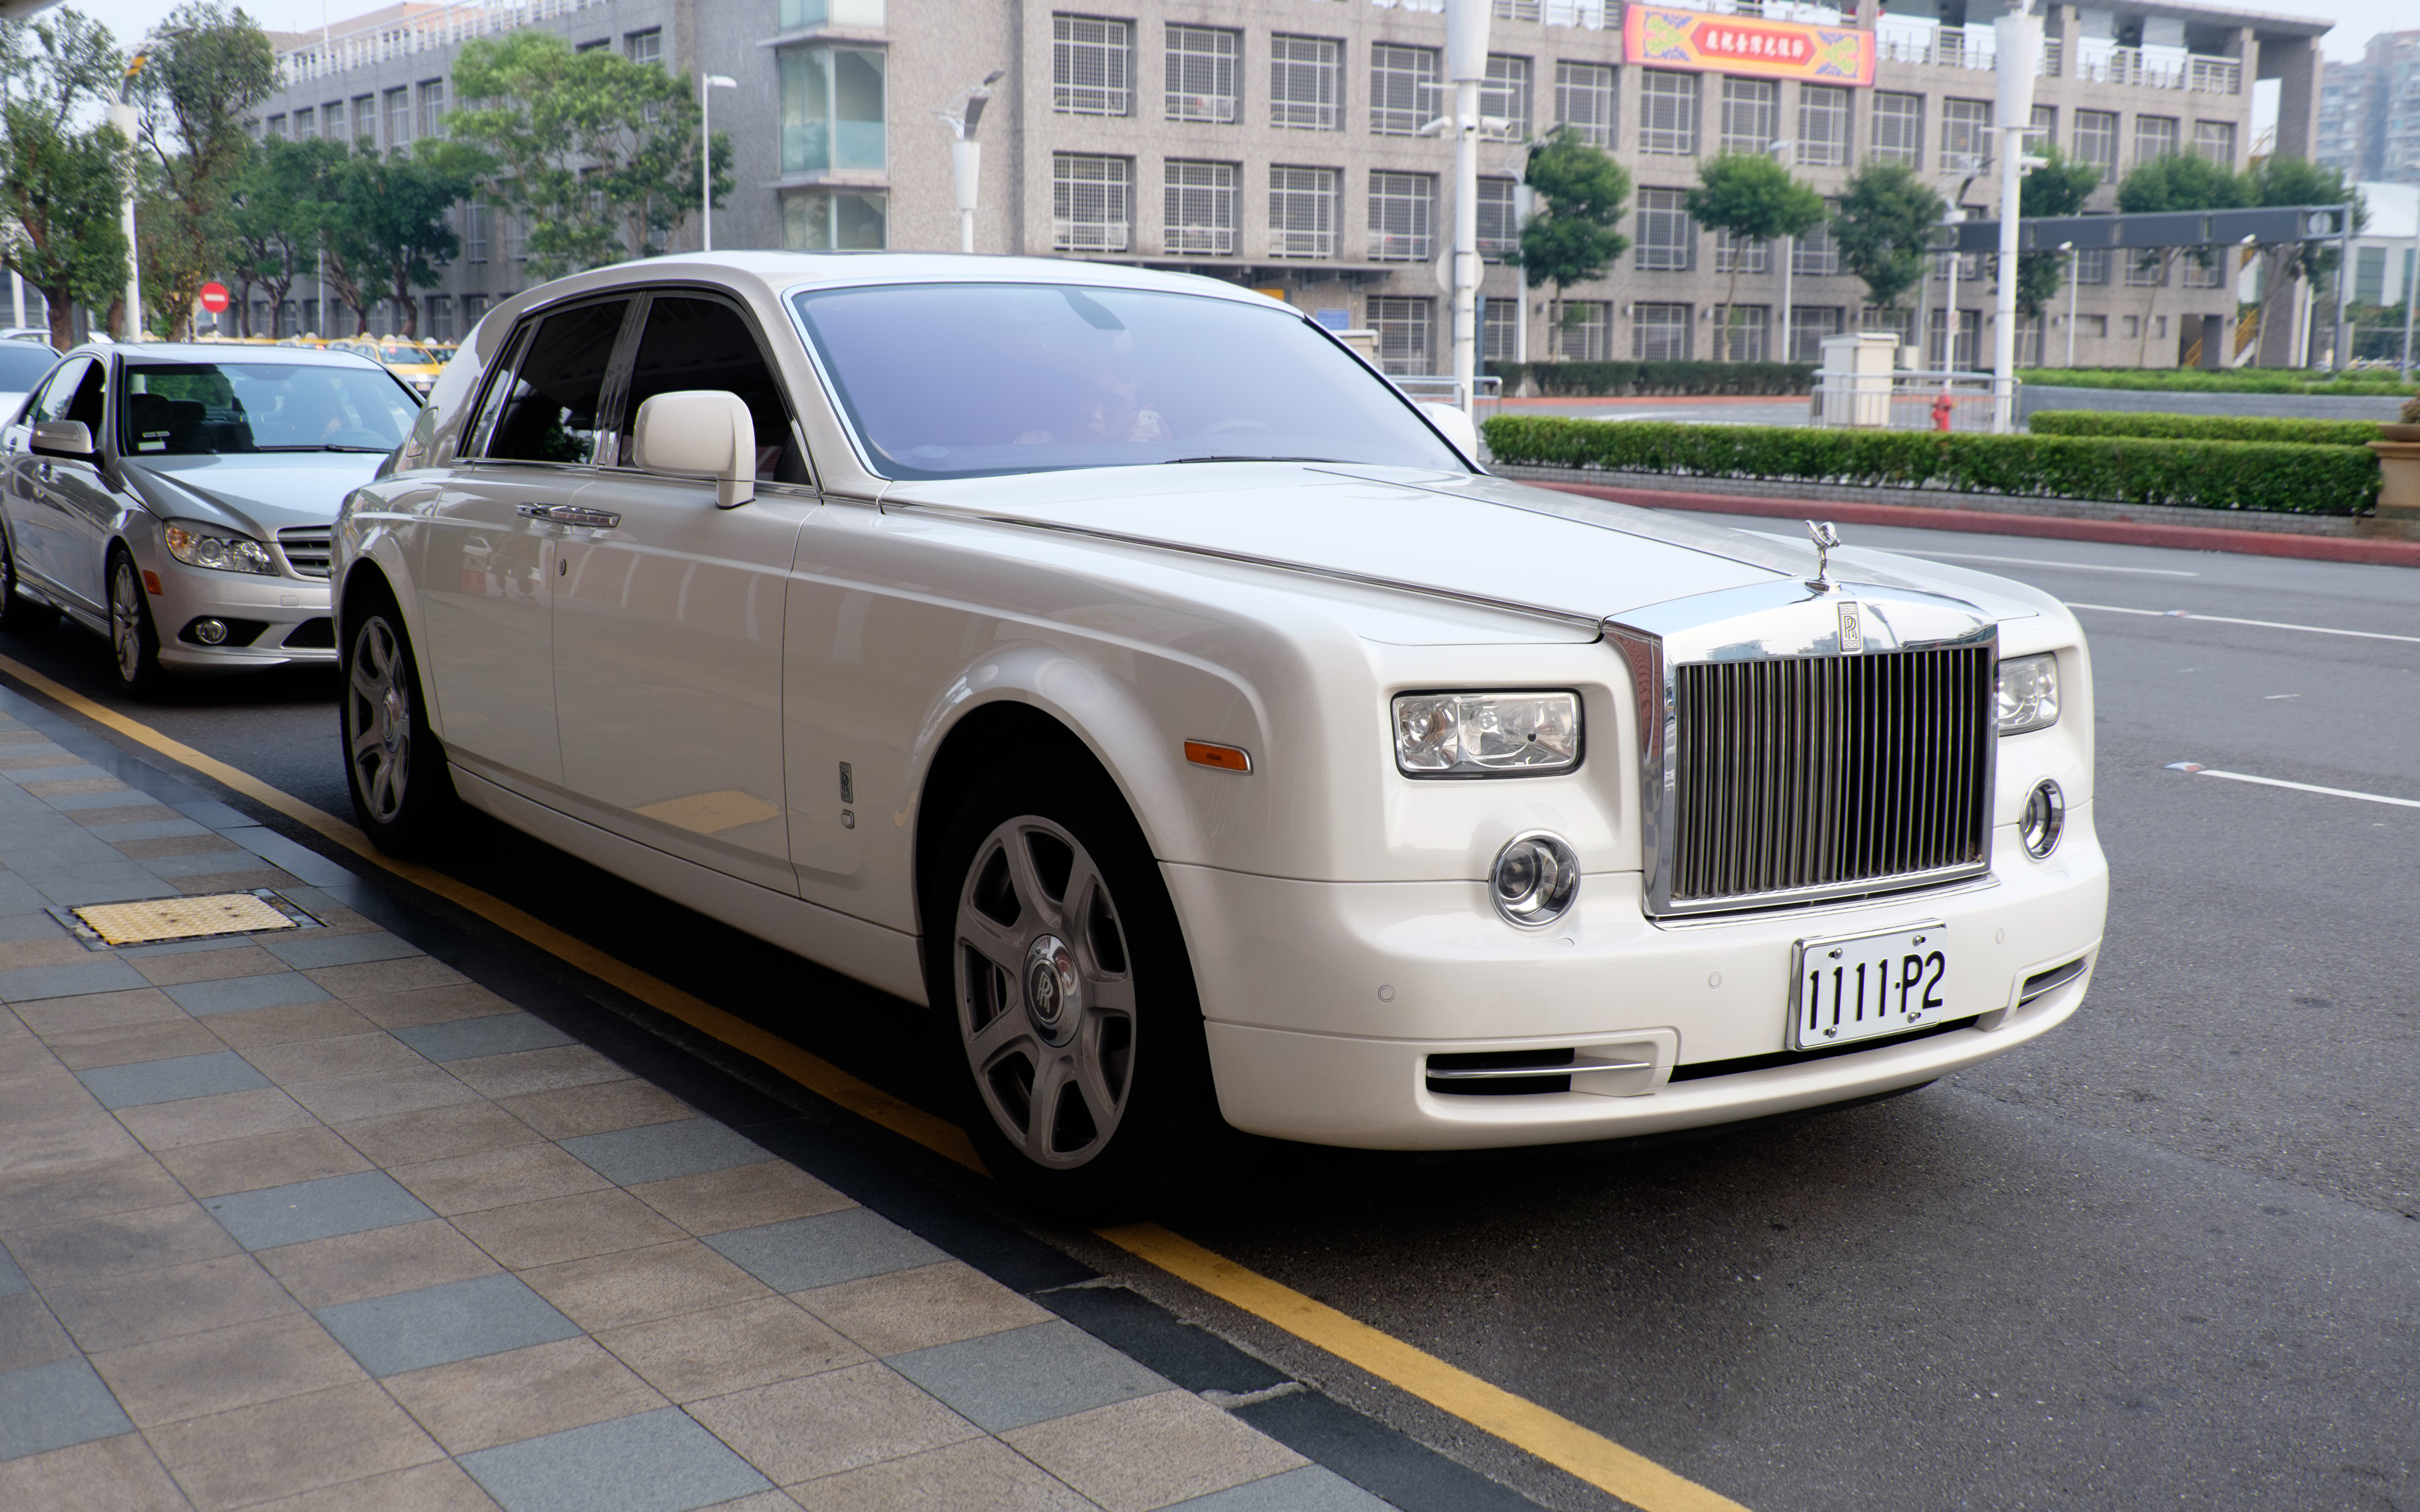 file:rolls-royce phantom parked in front of 1st terminal, taipei